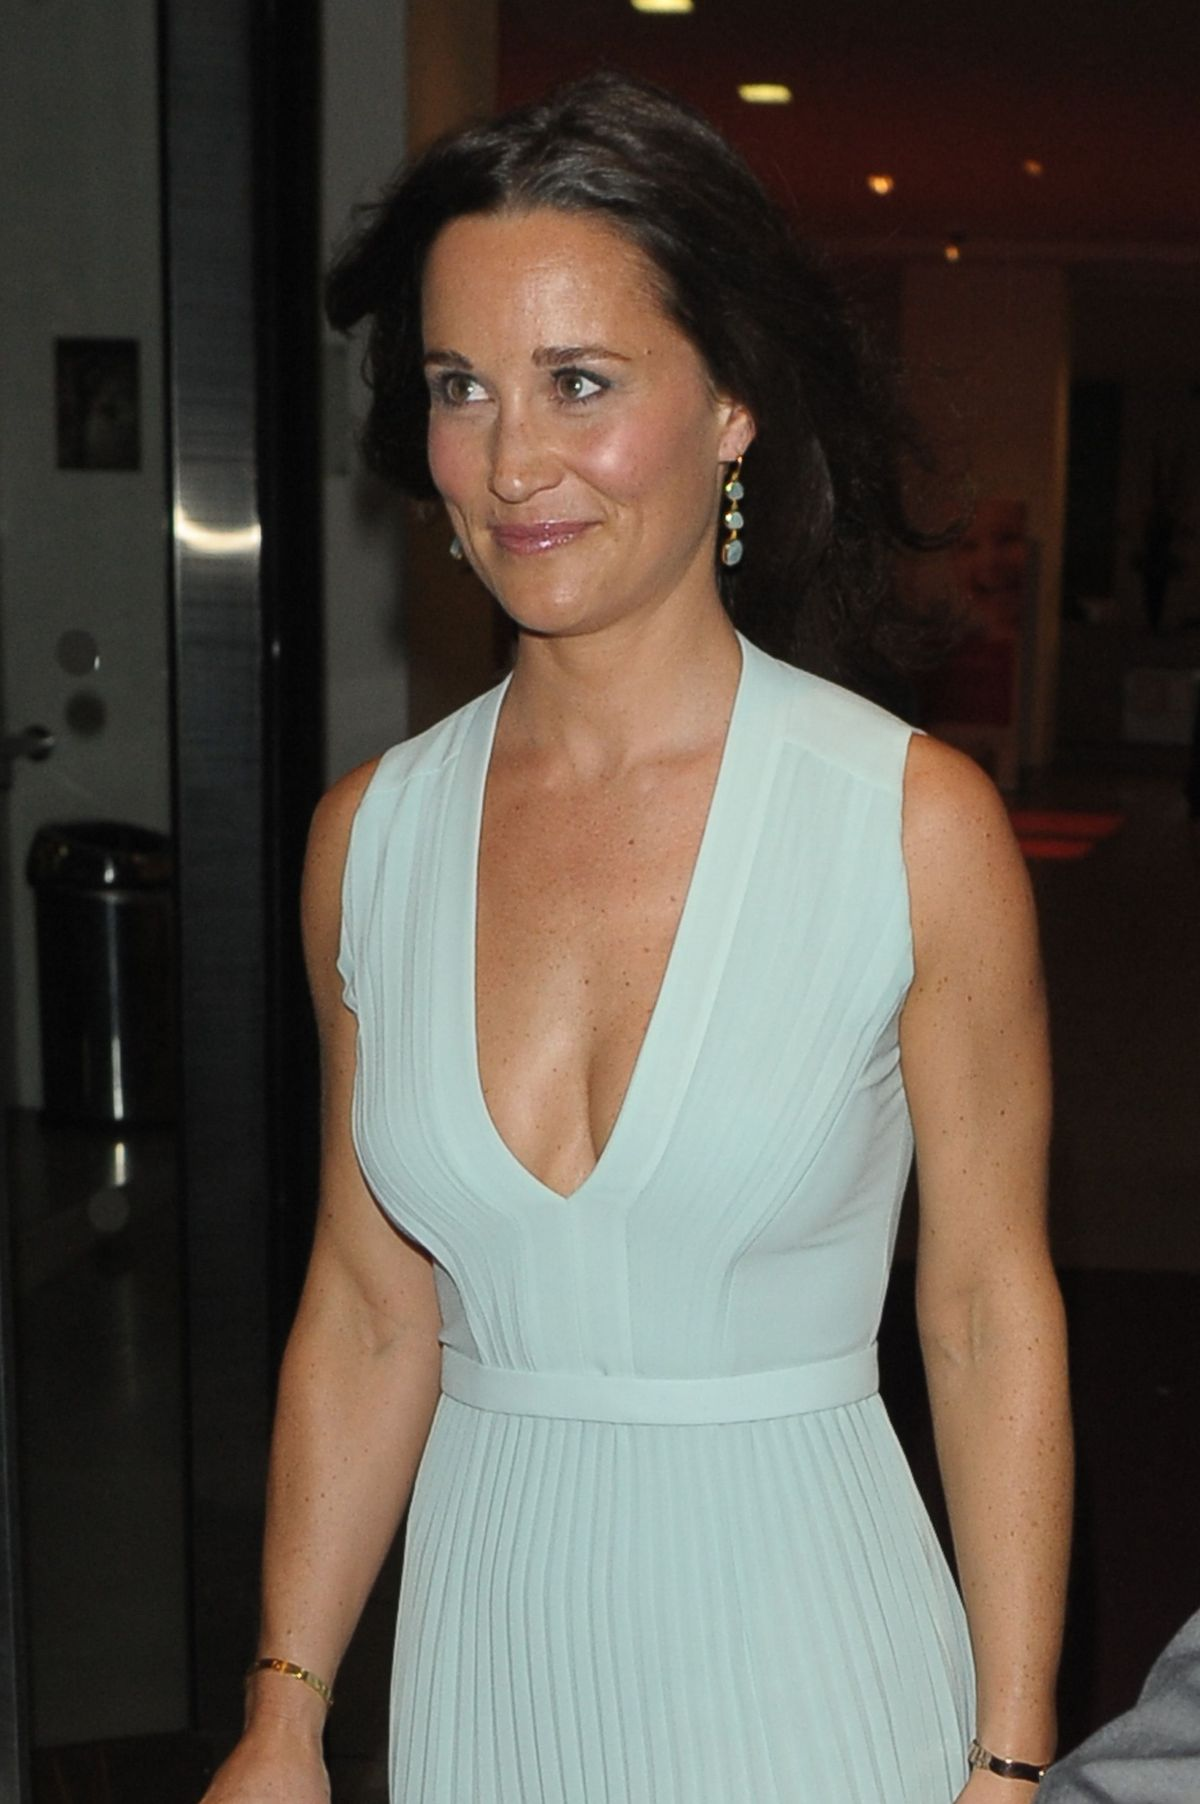 PIPPA MIDDLETON at Parasnowball Event in London